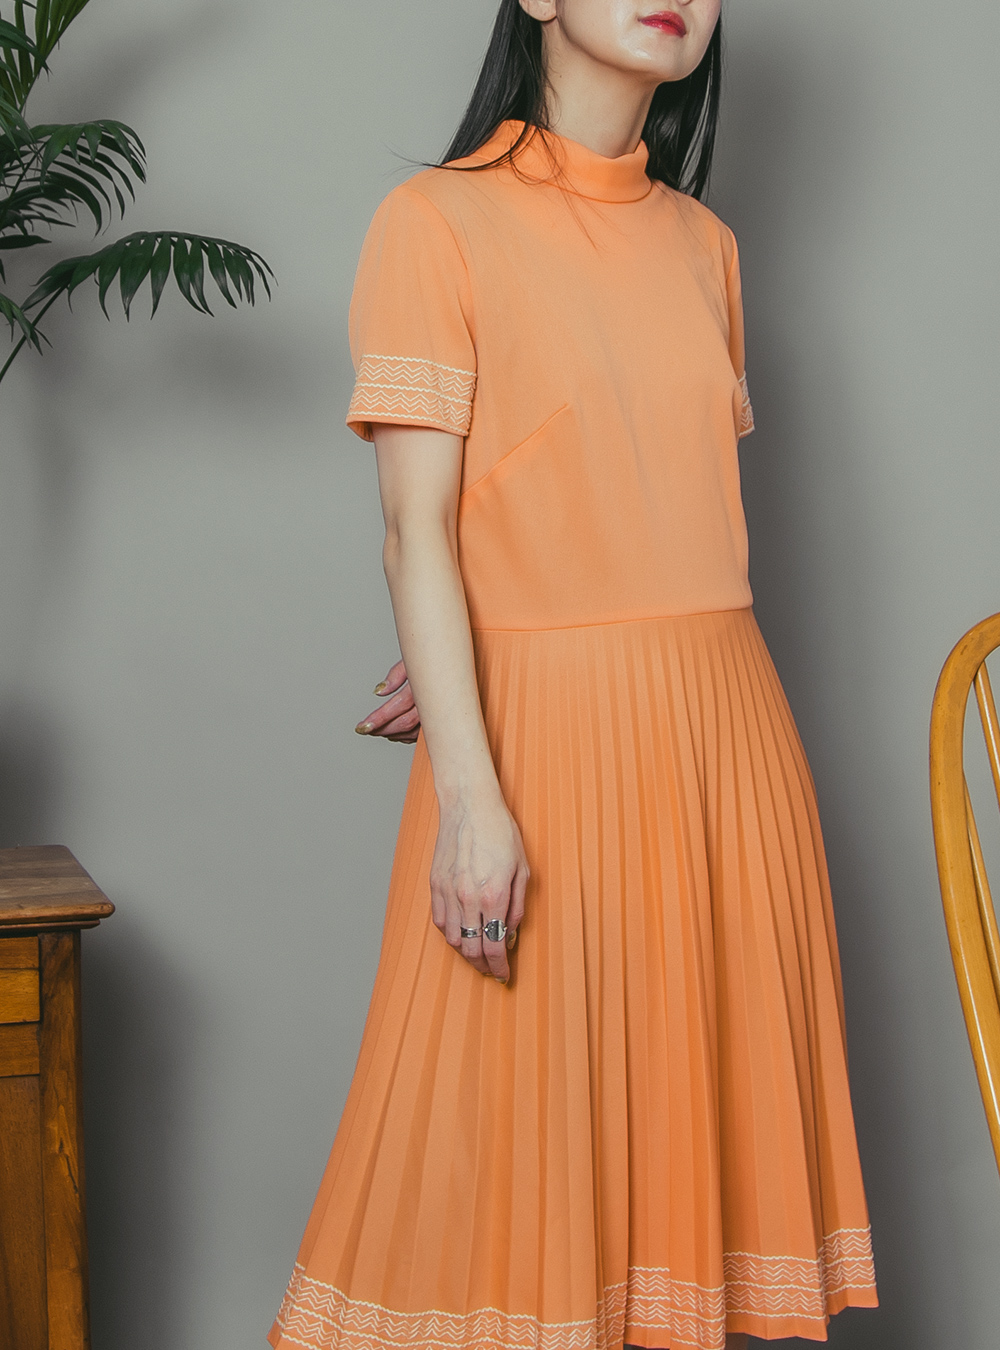 1970's Apricot Orange Embroidery Pleats Dress